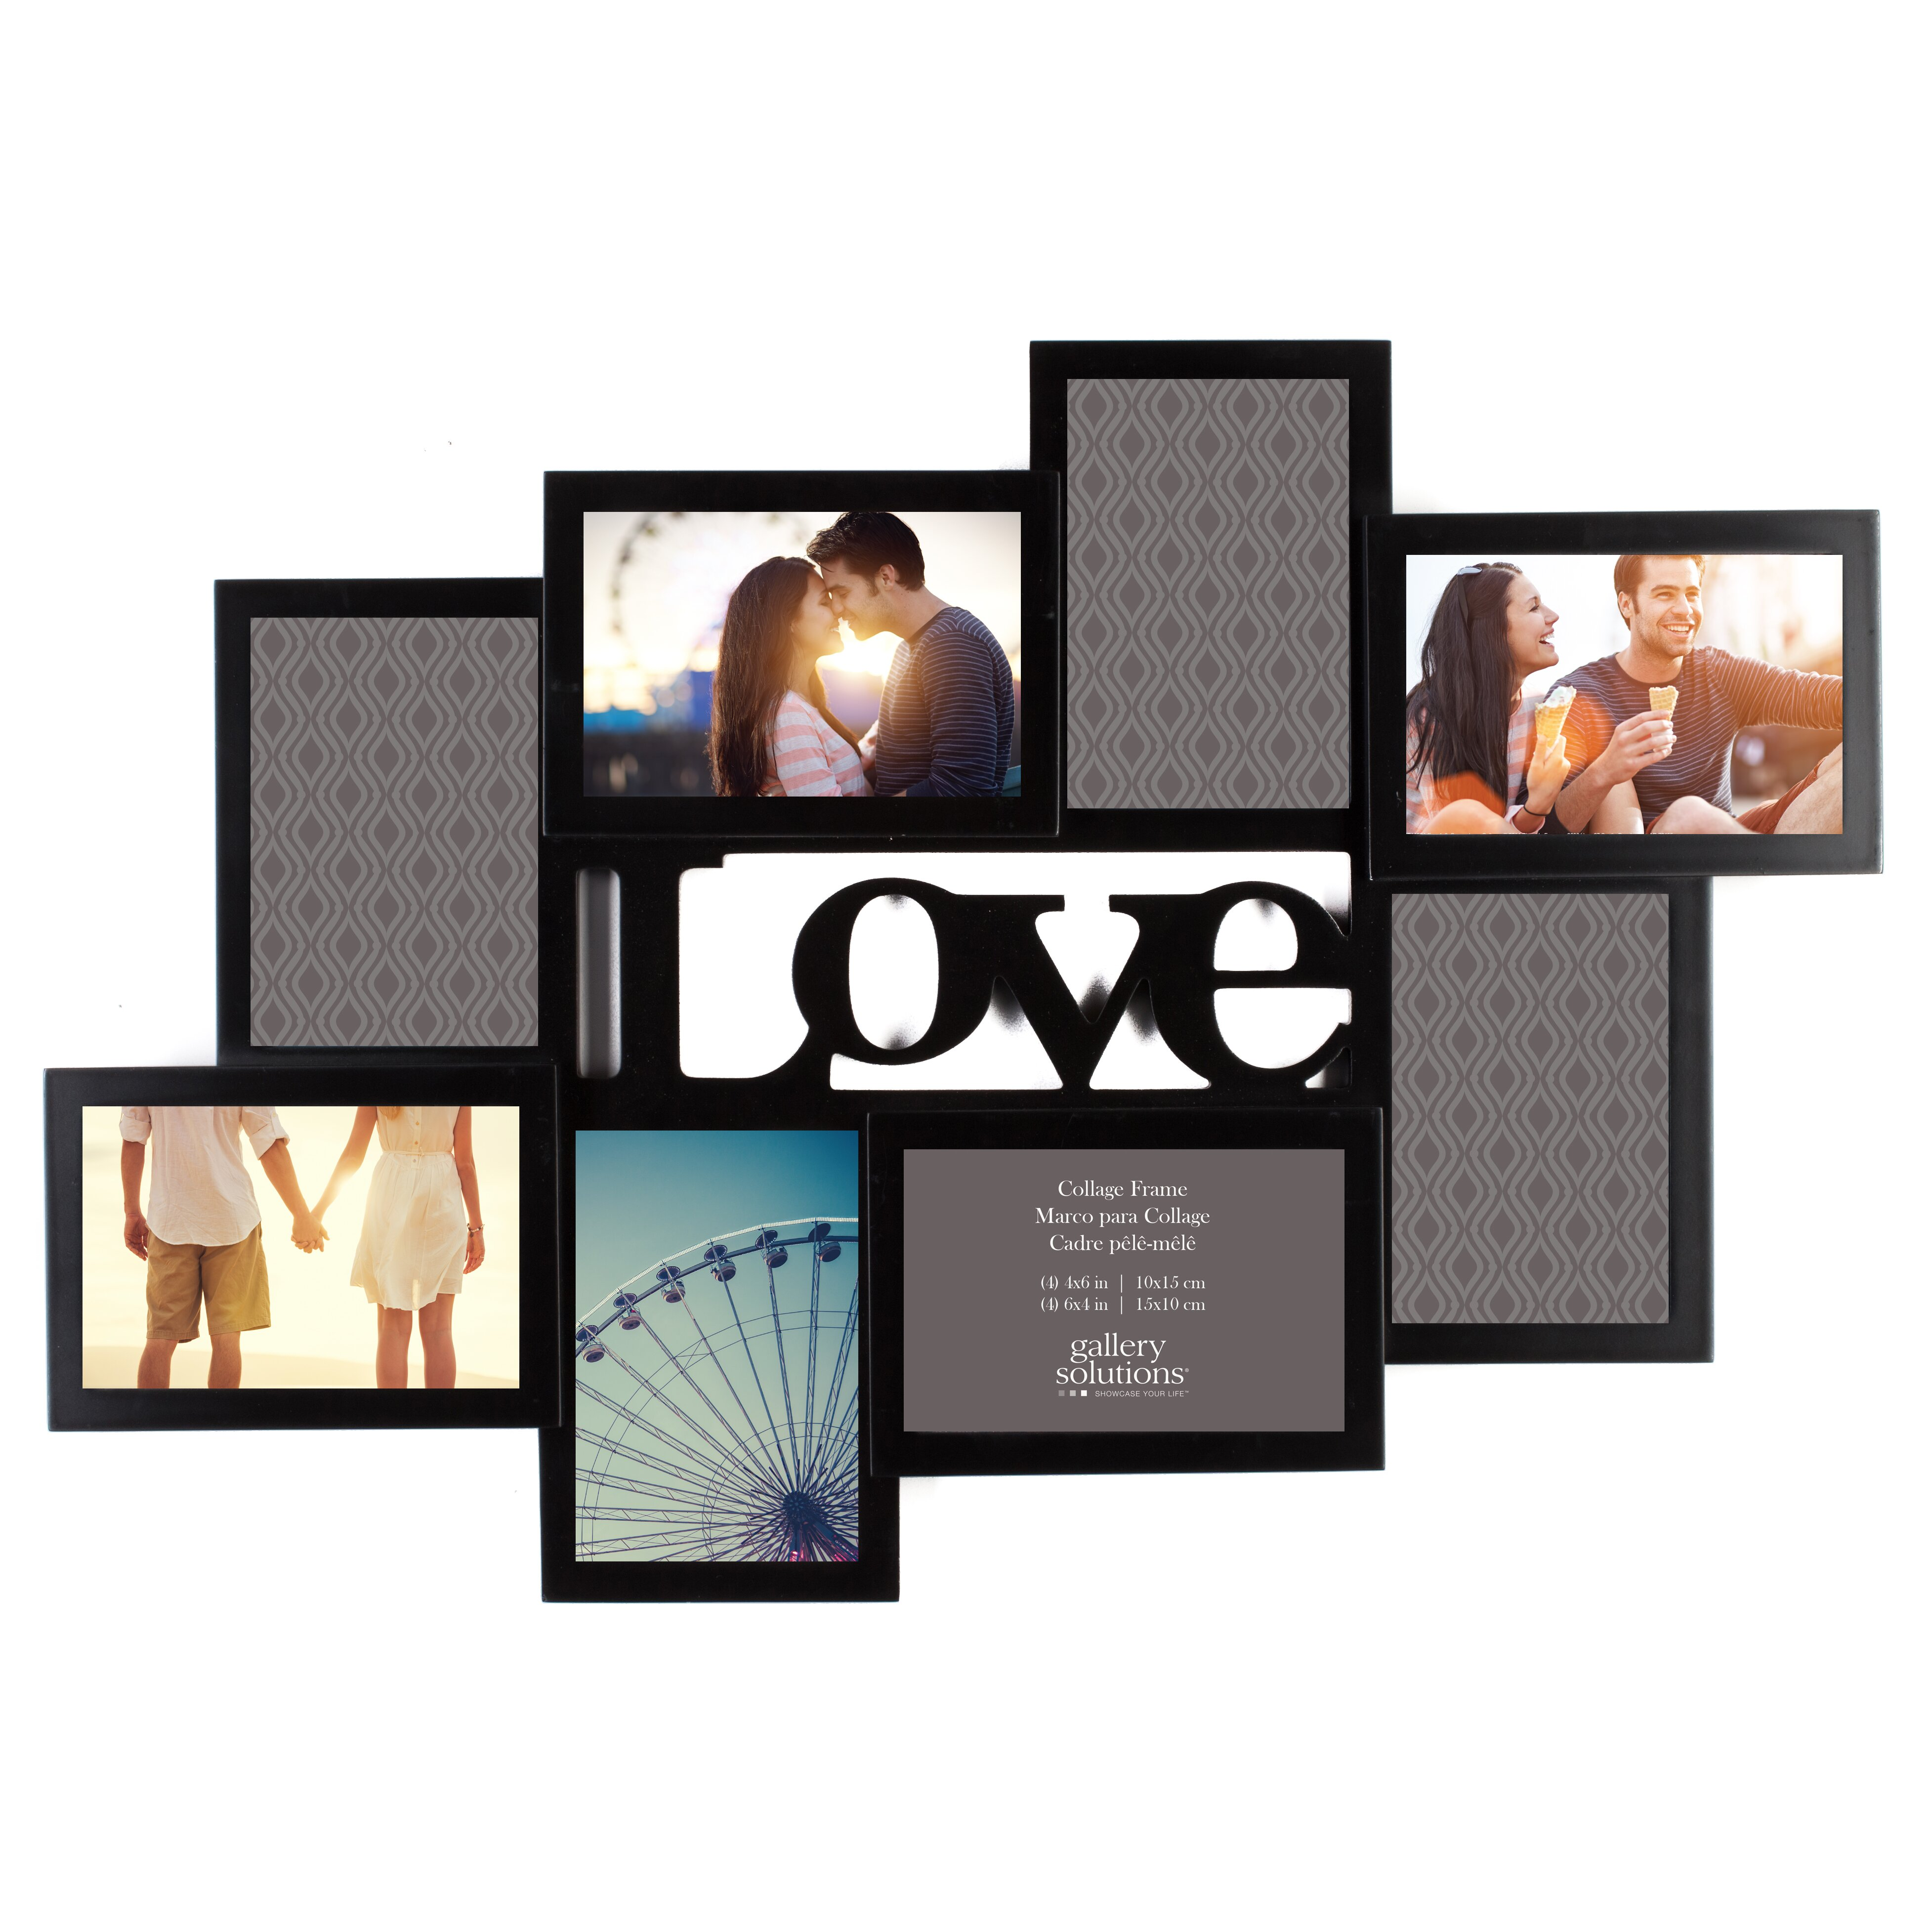 nielsen bainbridge gallery solutions 8 opening love cutout collage picture frame